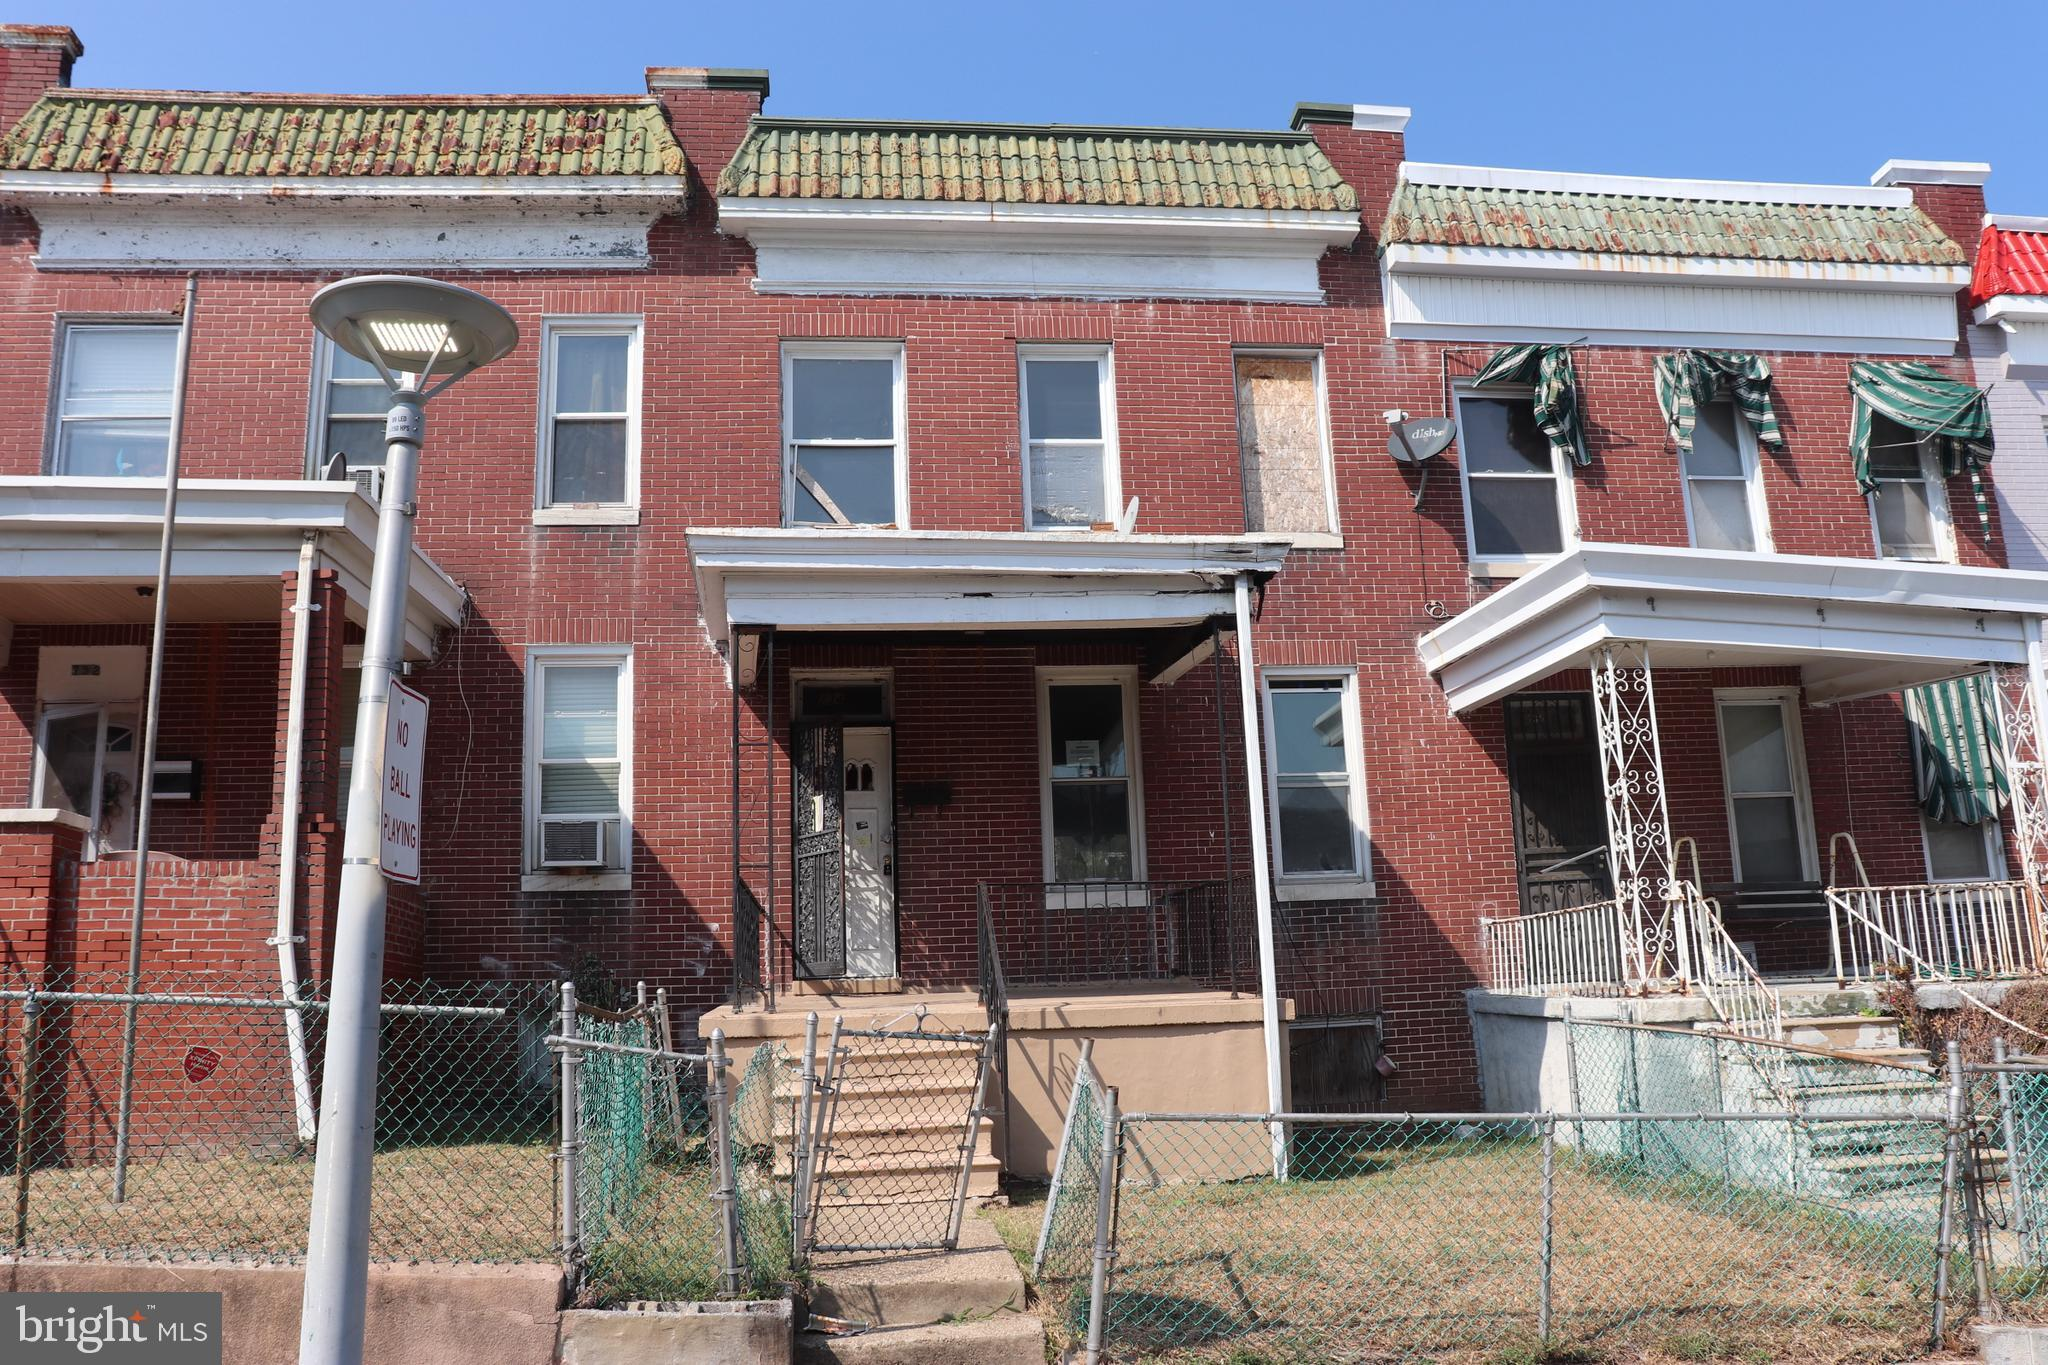 734 EDGEWOOD St N, Baltimore, MD, 21229